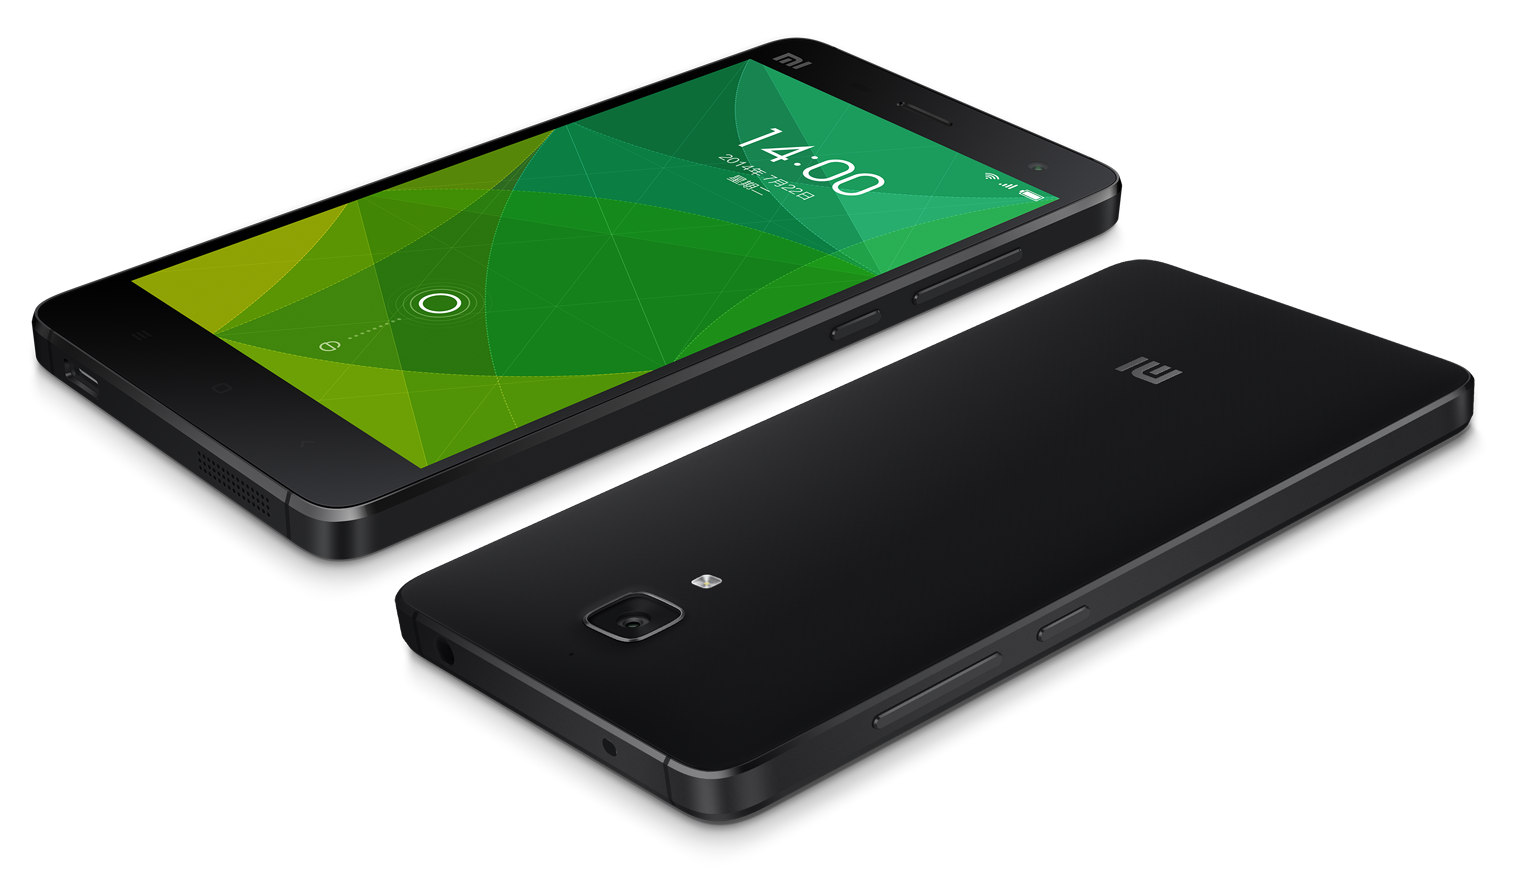 xiaomi mi 4 with 5 inch 1080p display snapdragon 801 and